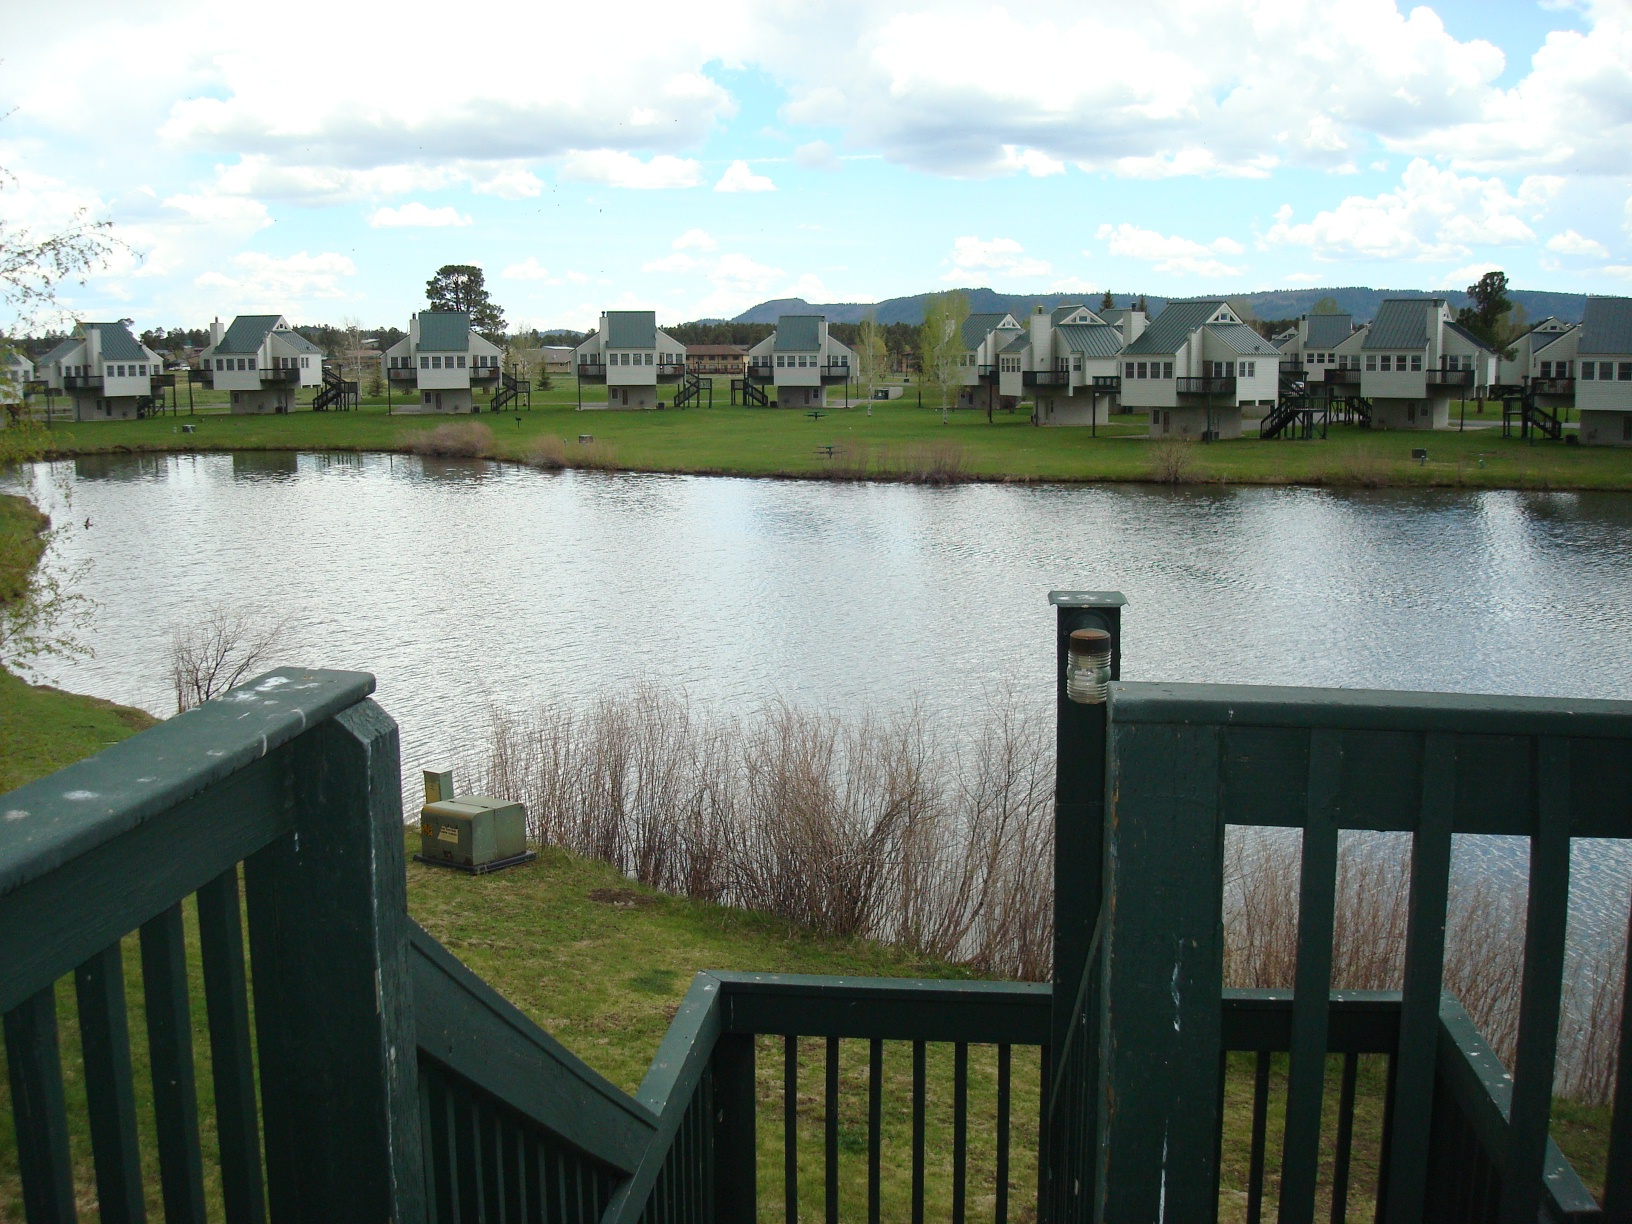 View of houses from deck